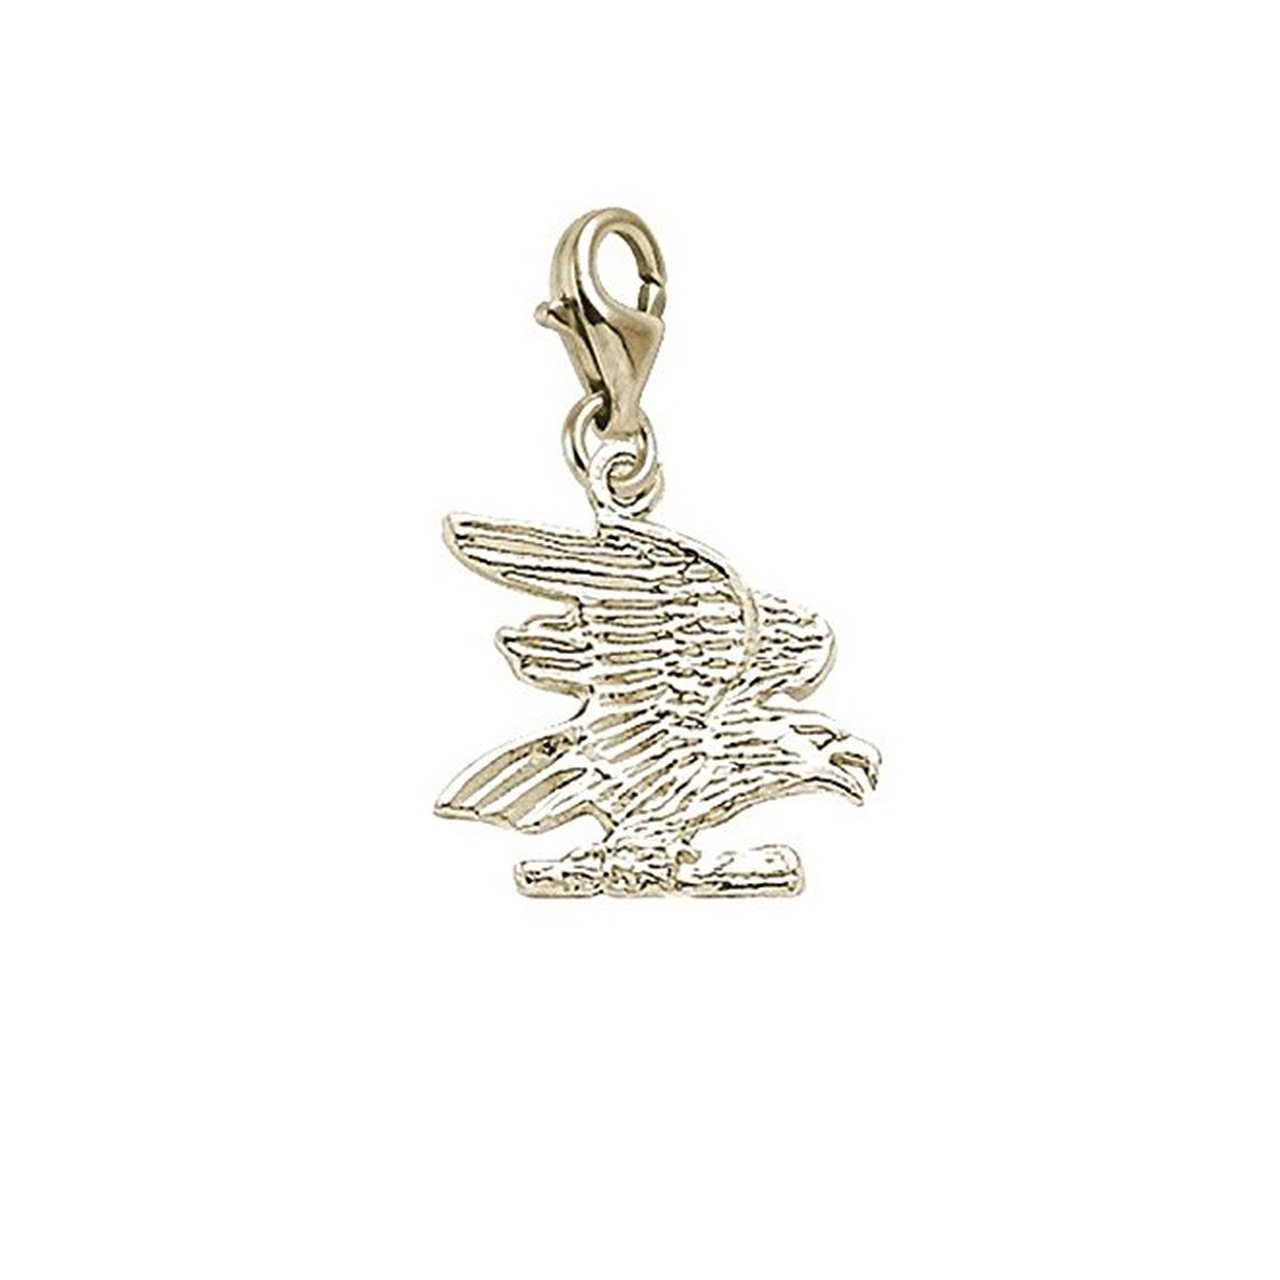 Charms for Bracelets and Necklaces Eagle Charm With Lobster Claw Clasp